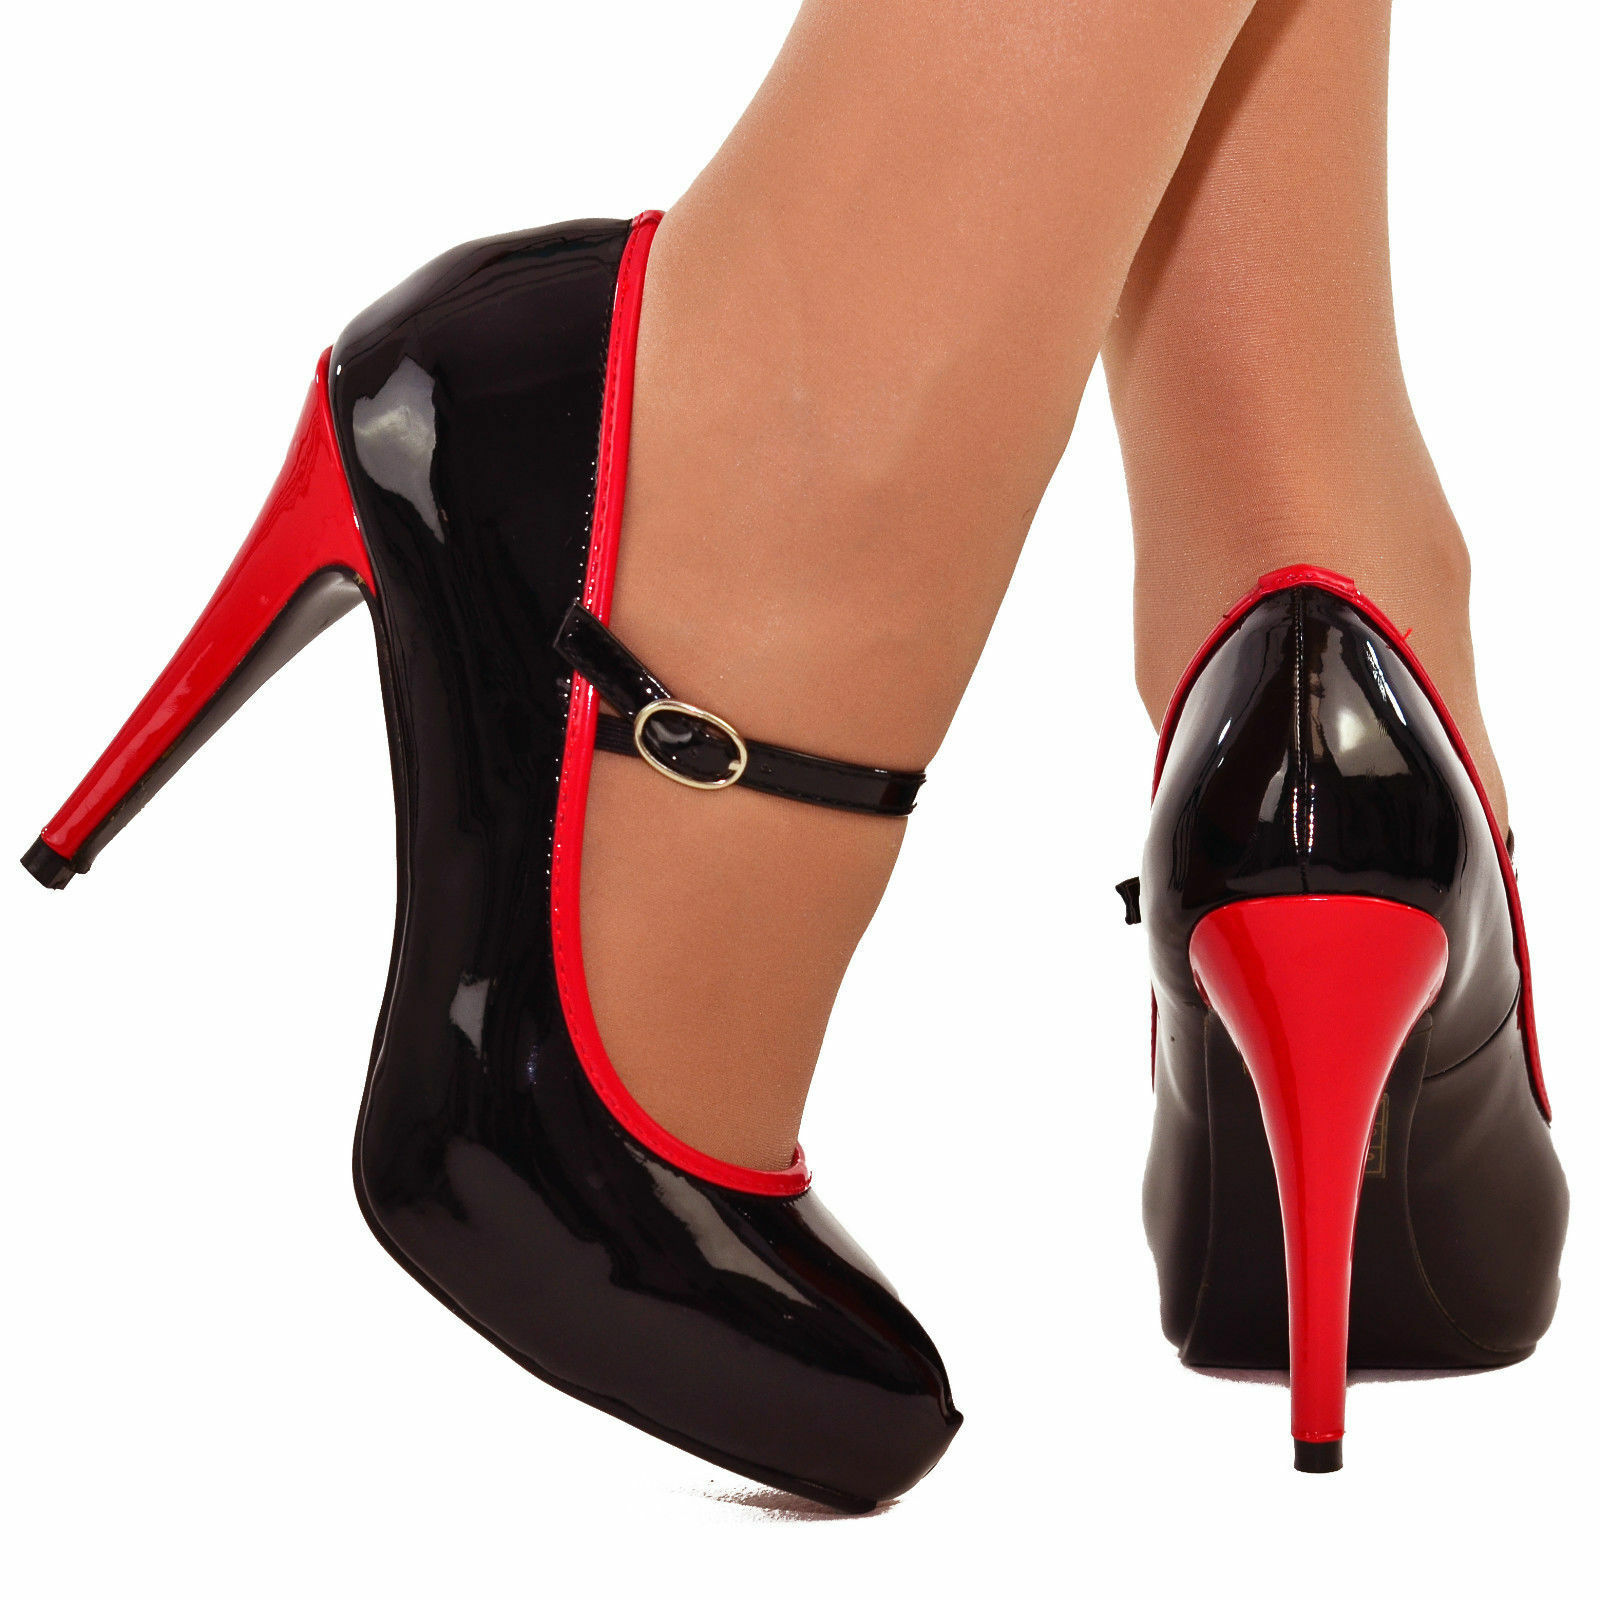 LADIES BLACK RED MARY JANE HIGH STILETTO HEEL FULL TOE COURT SHOES SIZES 3-8